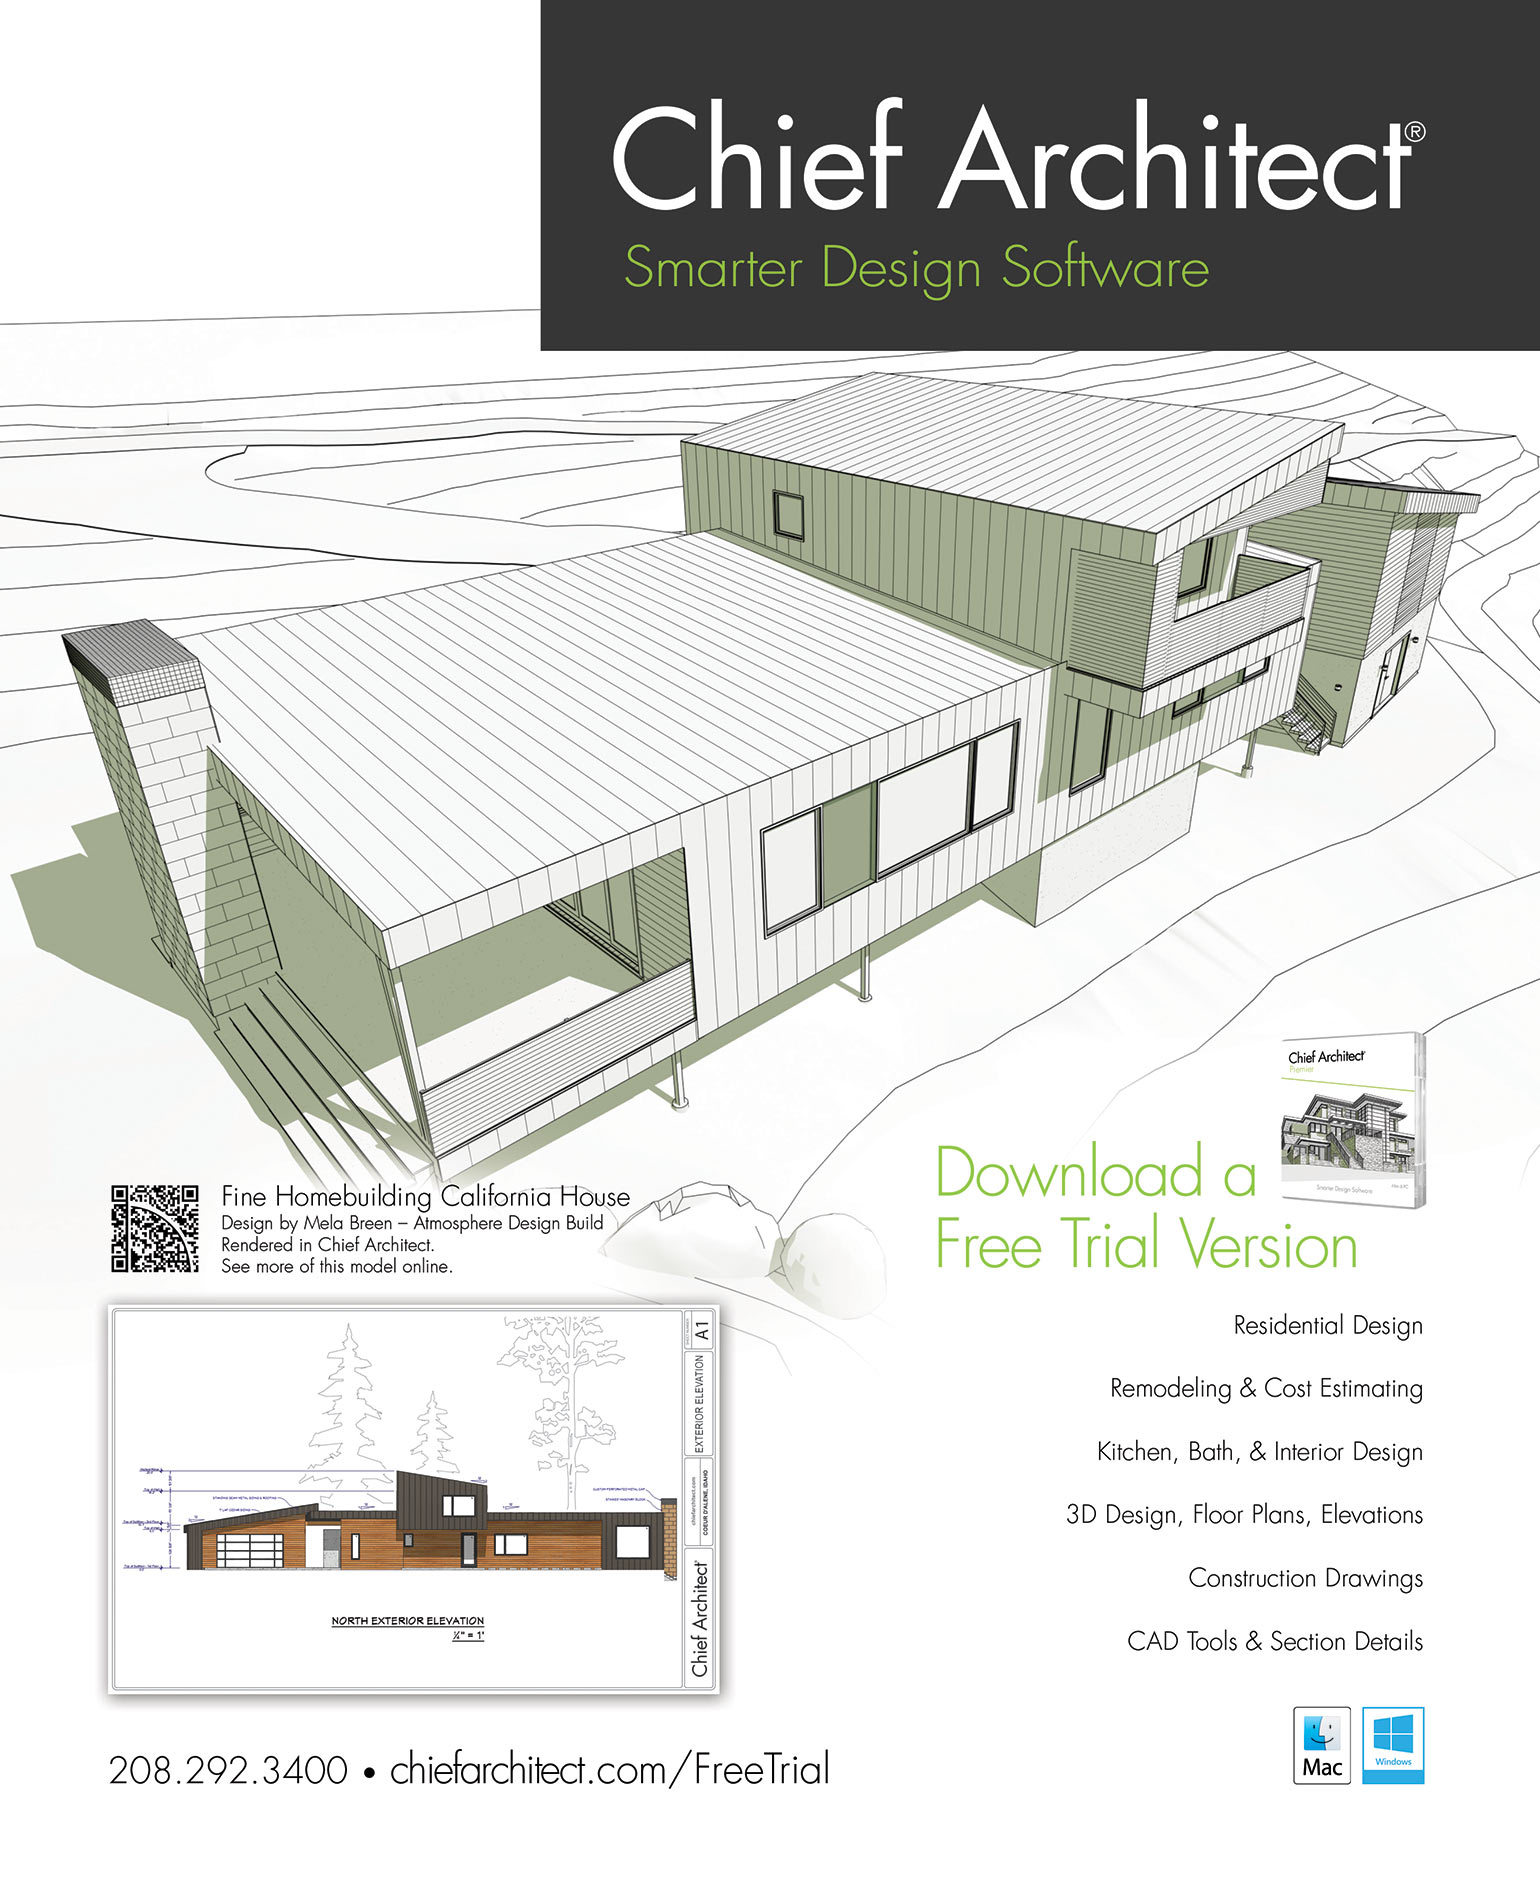 Fine Homebuilding House 2018 - California House | Chief Architect on simple house plans, house schematics, traditional house plans, 2 story house plans, residential house plans, colonial house plans, bungalow house plans, craftsman house plans, house site plan, house design, small house plans, duplex house plans, big luxury house plans, house exterior, country house plans, mediterranean house plans, luxury home plans, house blueprints, house layout, modern house plans,